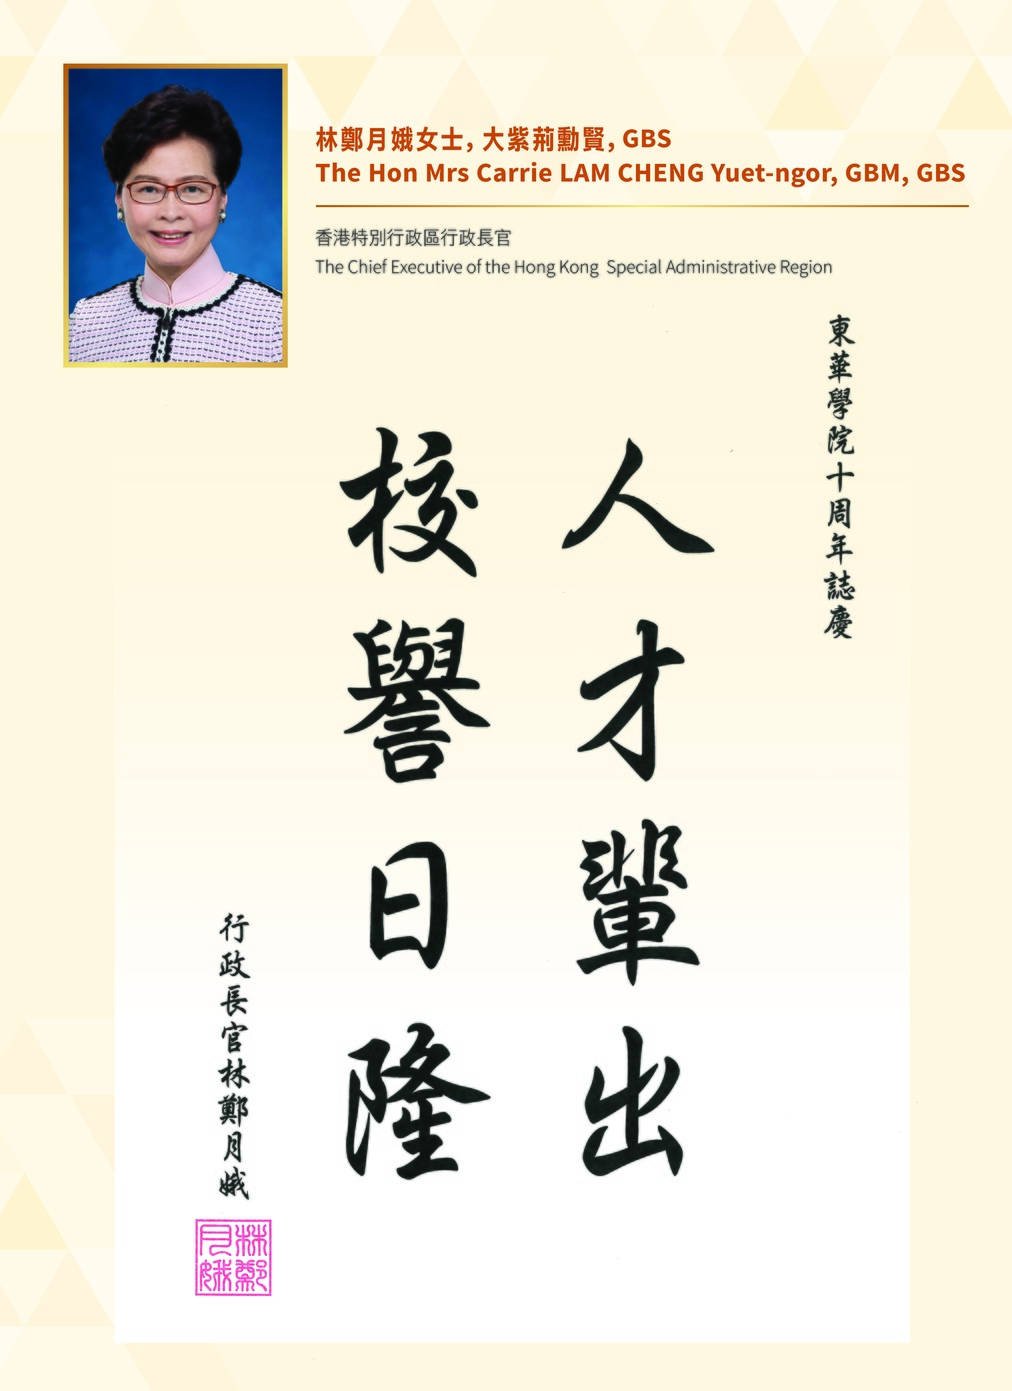 The Chief Executive of the Hong Kong Special Administrative Region